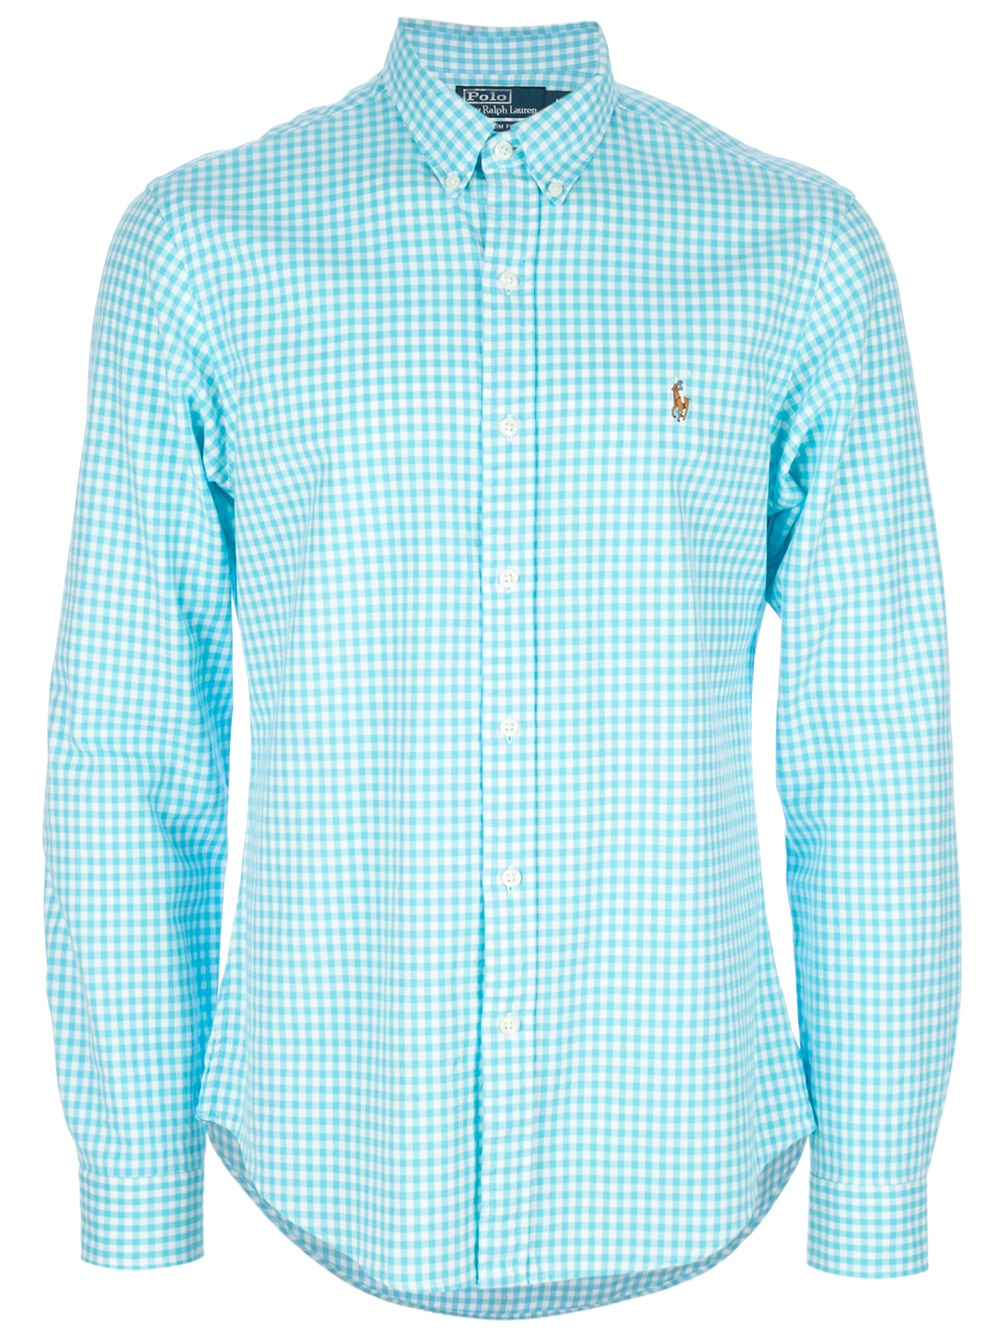 Lyst - Polo ralph lauren Button Down Checked Shirt in Blue for Men